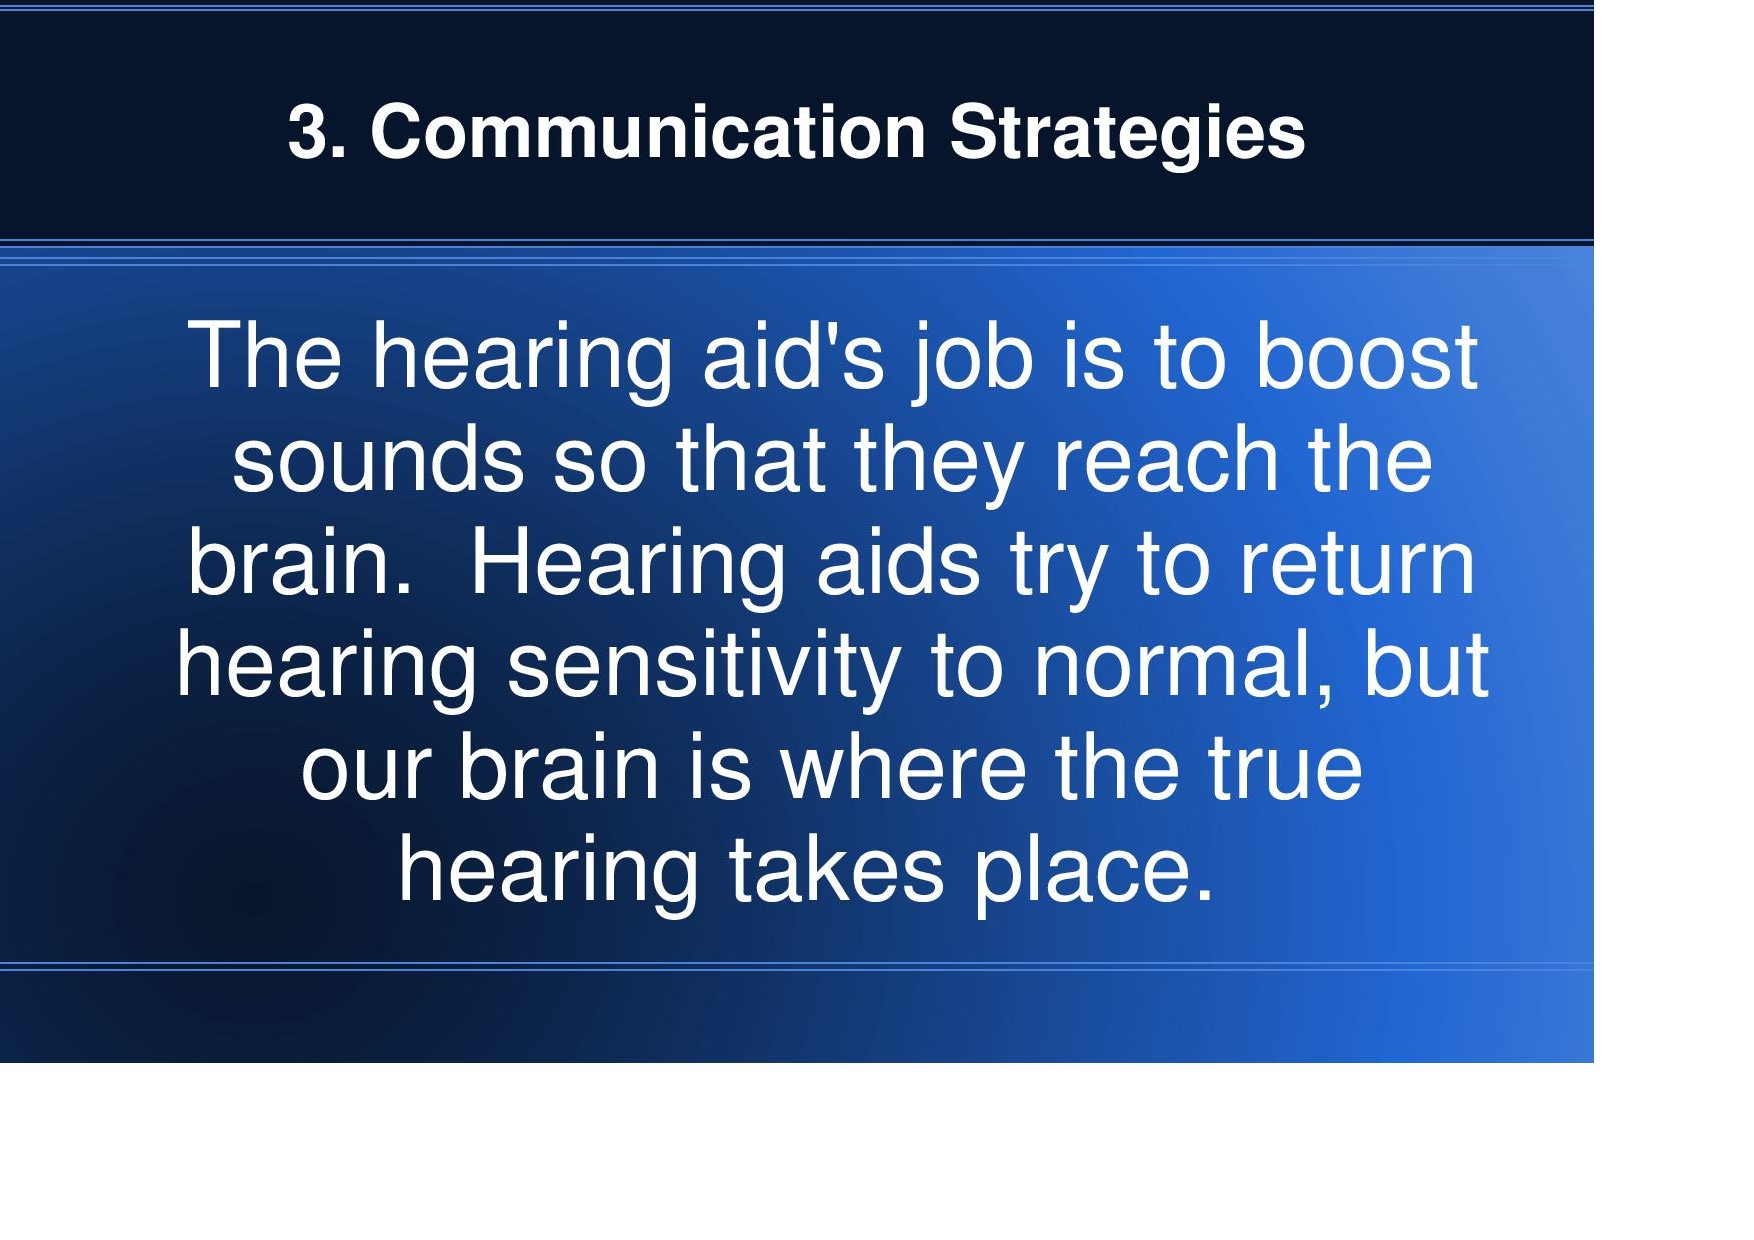 Web 3 ways to combat hearing loss09.jpg